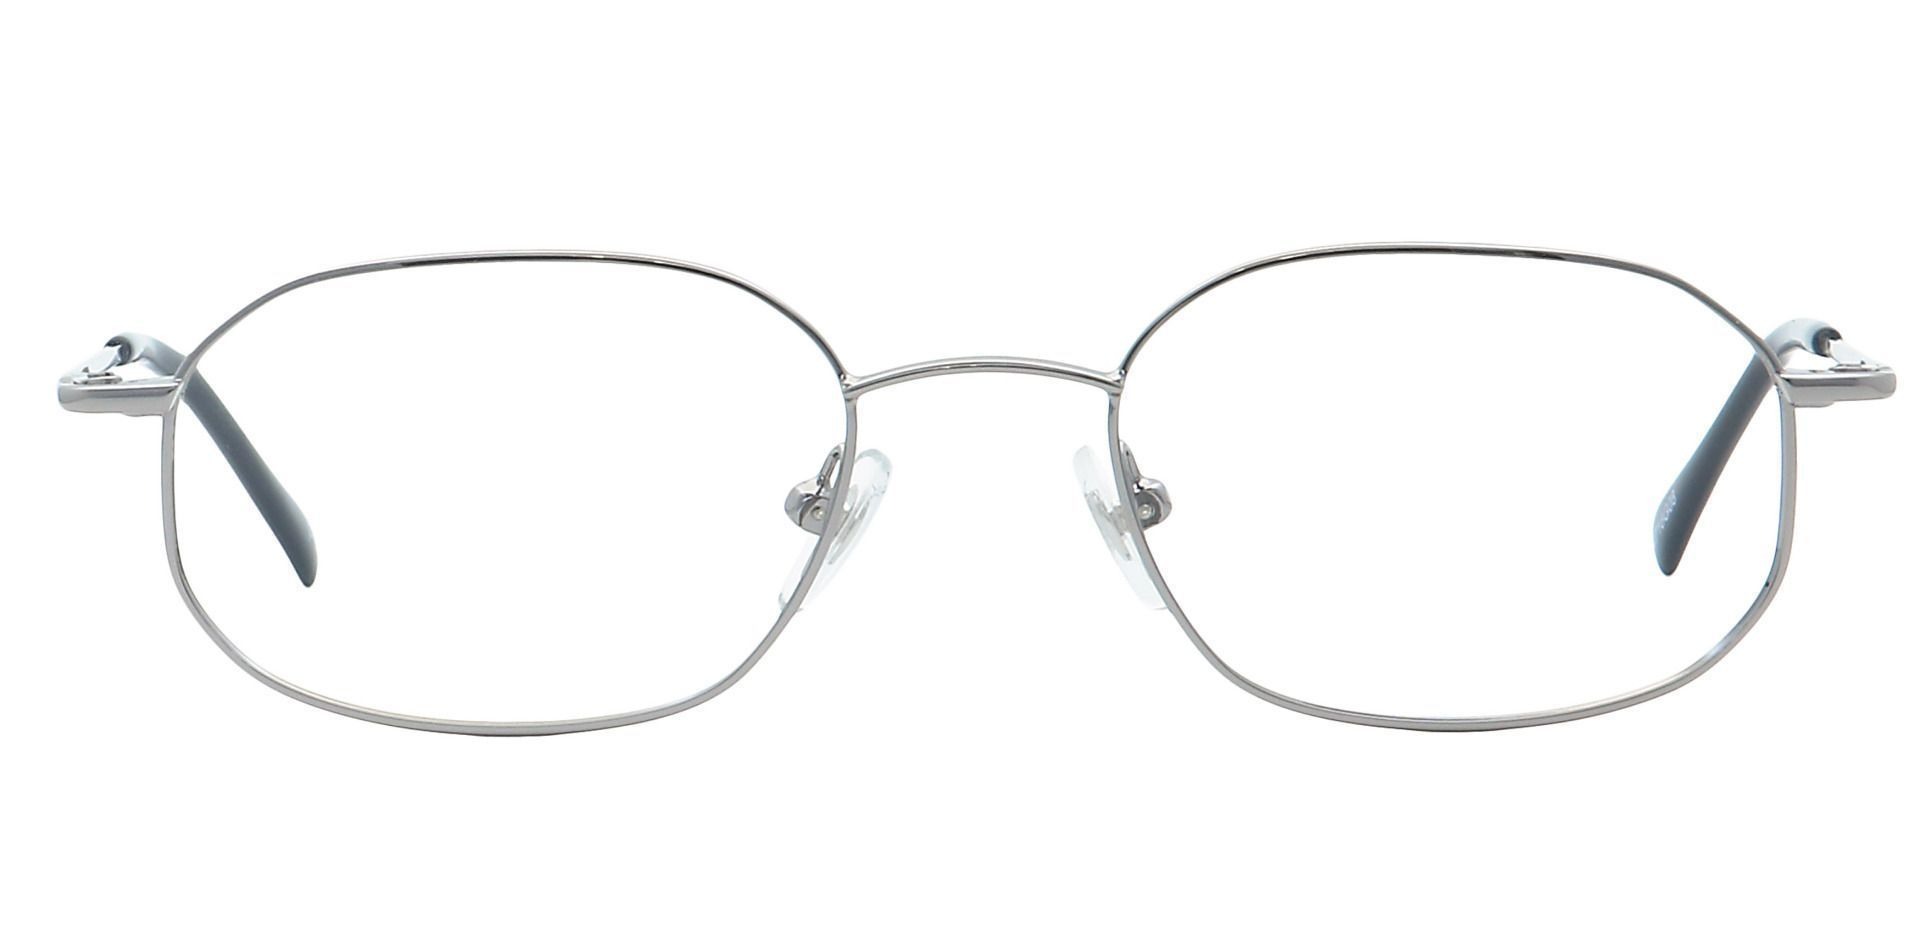 Parker Oval Non-Rx Glasses - Gray